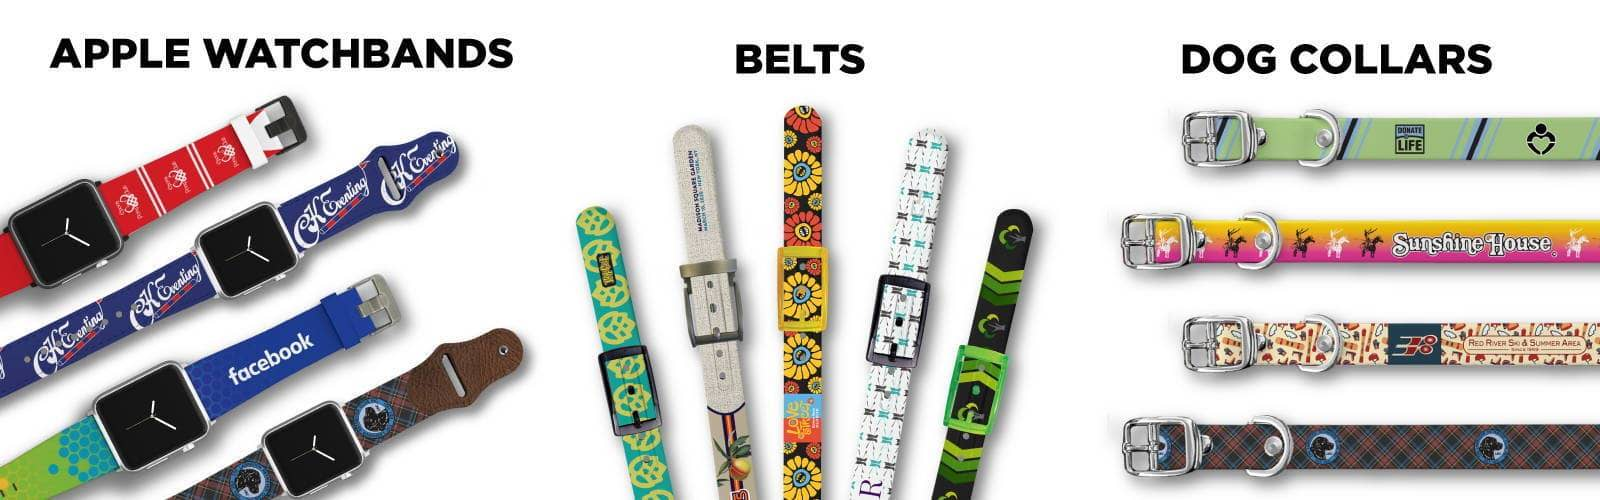 C4 apple watch bands belts and dog collars